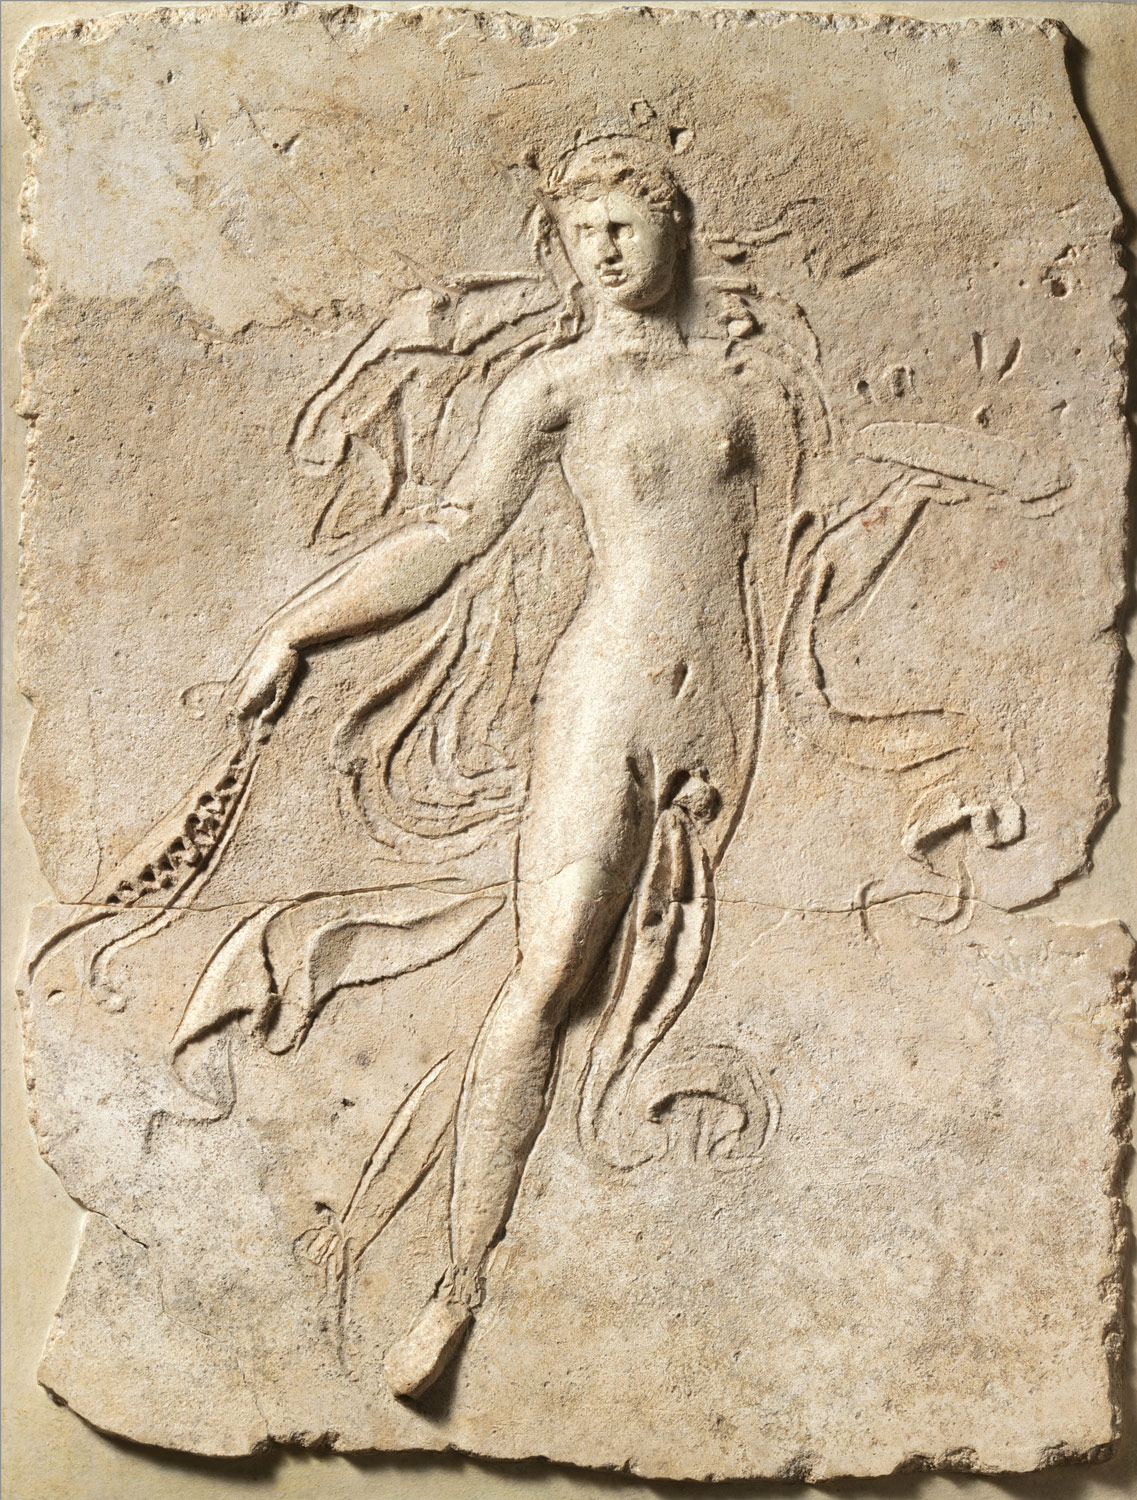 Stucco relief panel